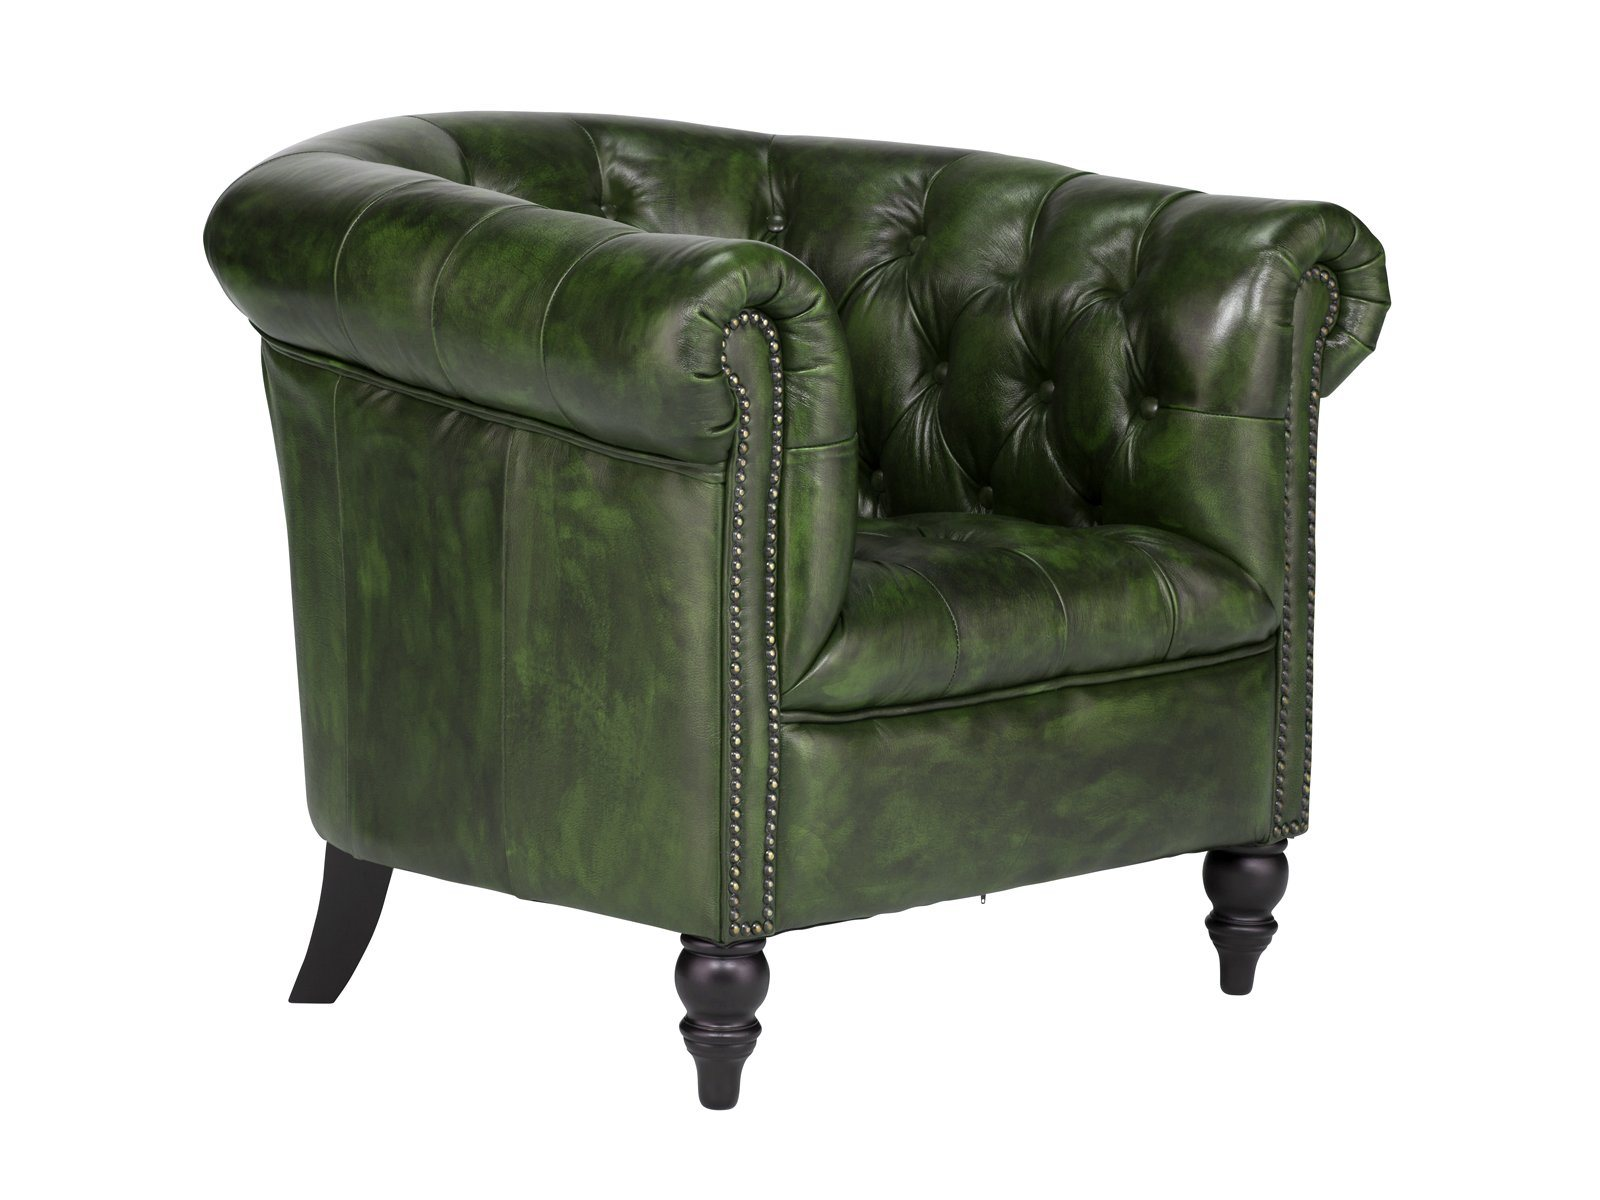 Massivum Sessel Massivum Sessel Aus Echtleder Chesterfield Derry Grün